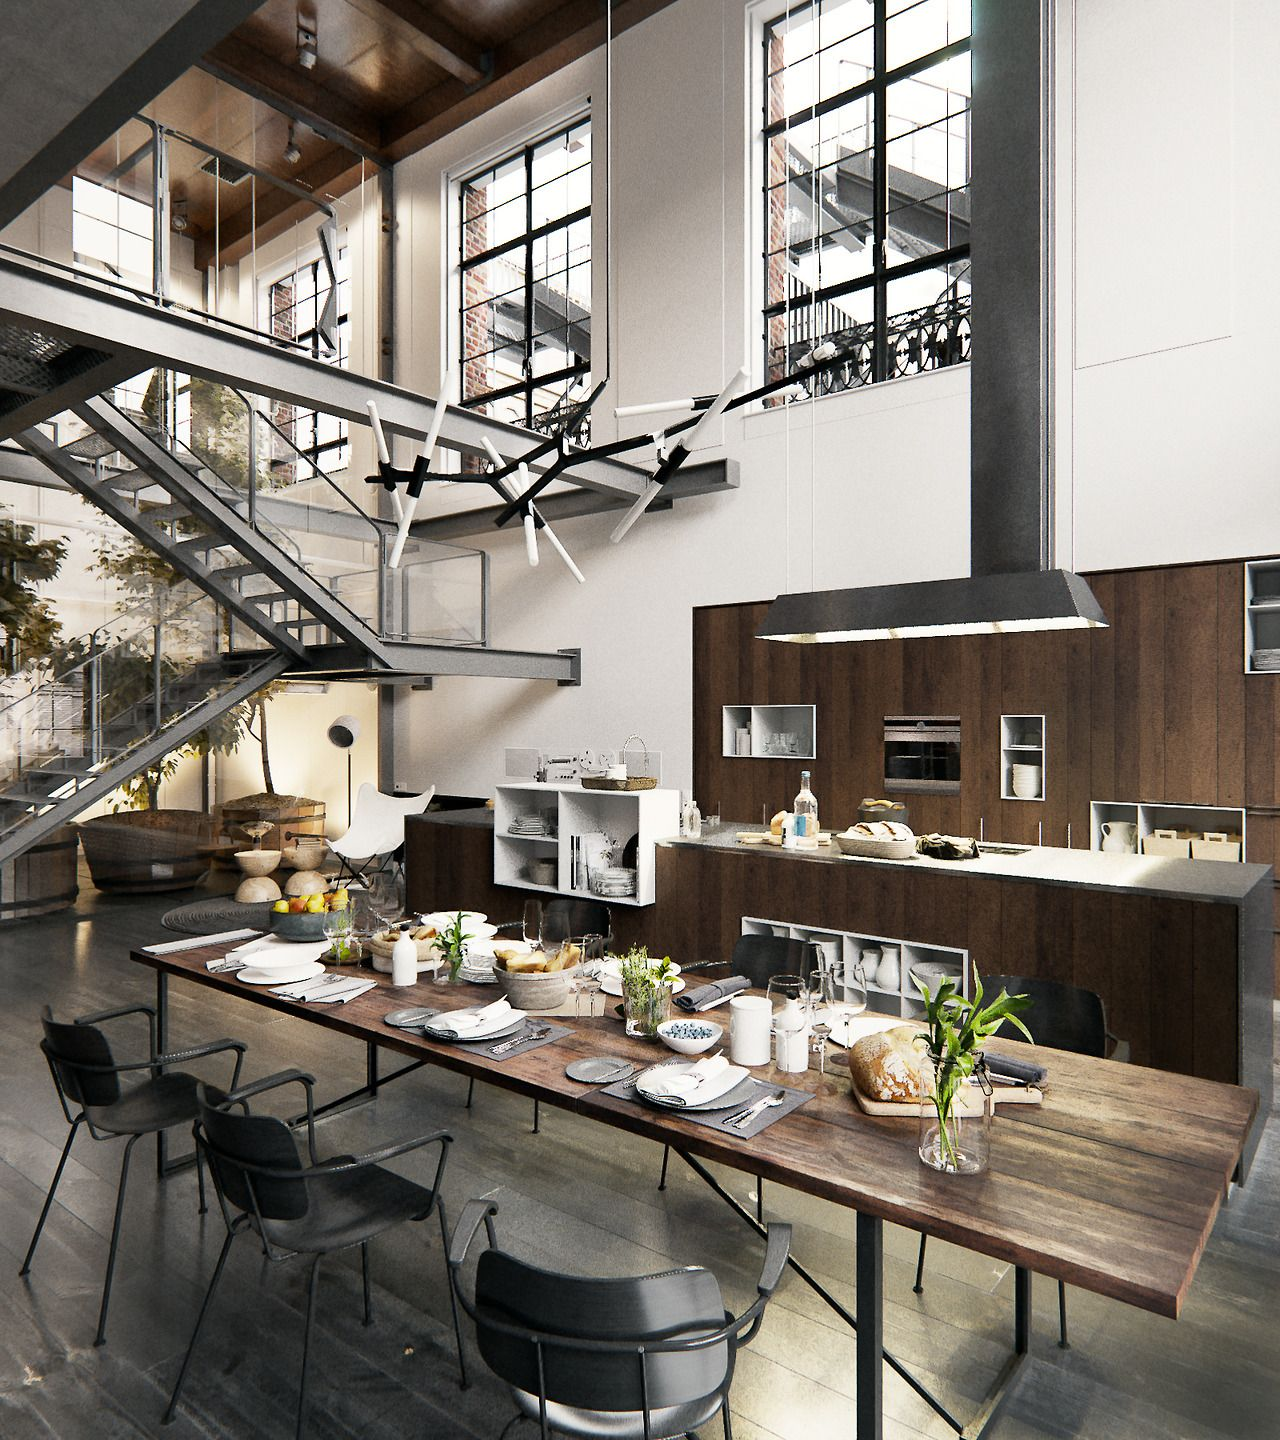 Modern Home Plans With Lofts: Industrial And Loft Living